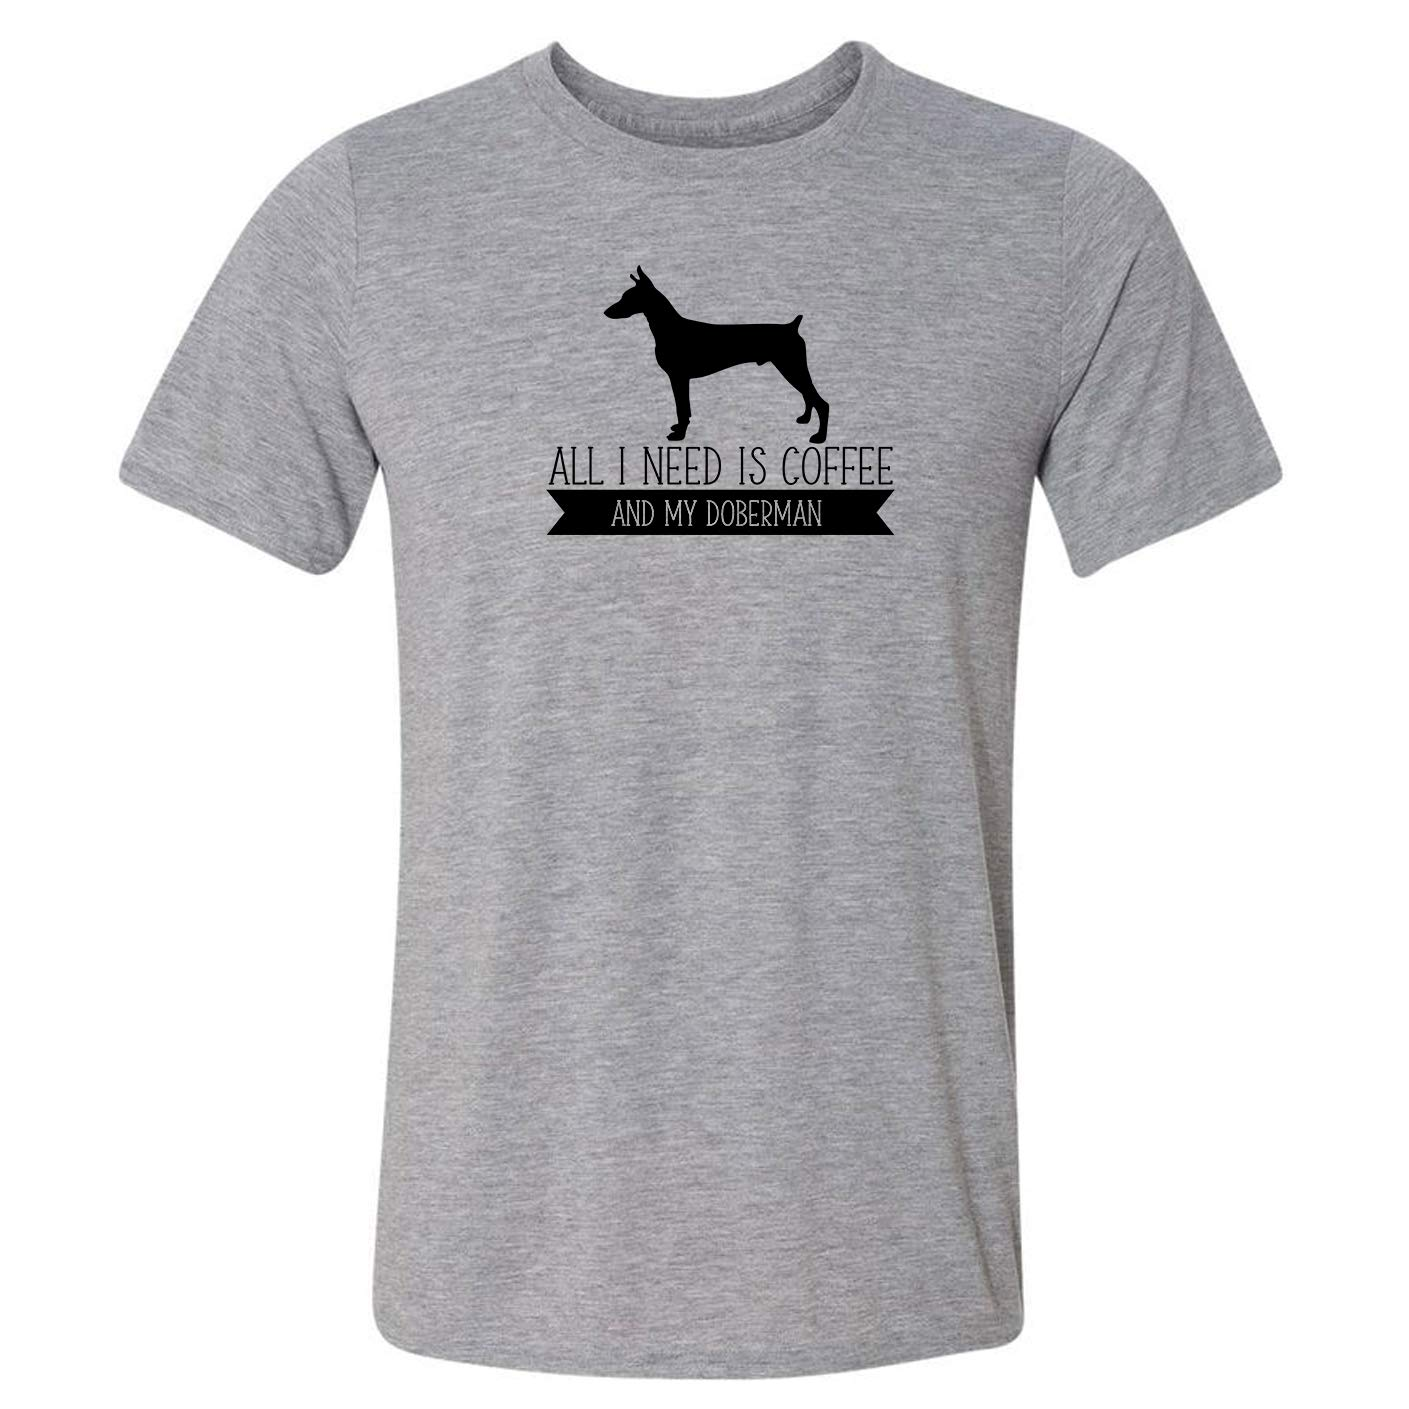 All I Need is Coffee Doberman Excellent Tucson Mall My T-Shirt and